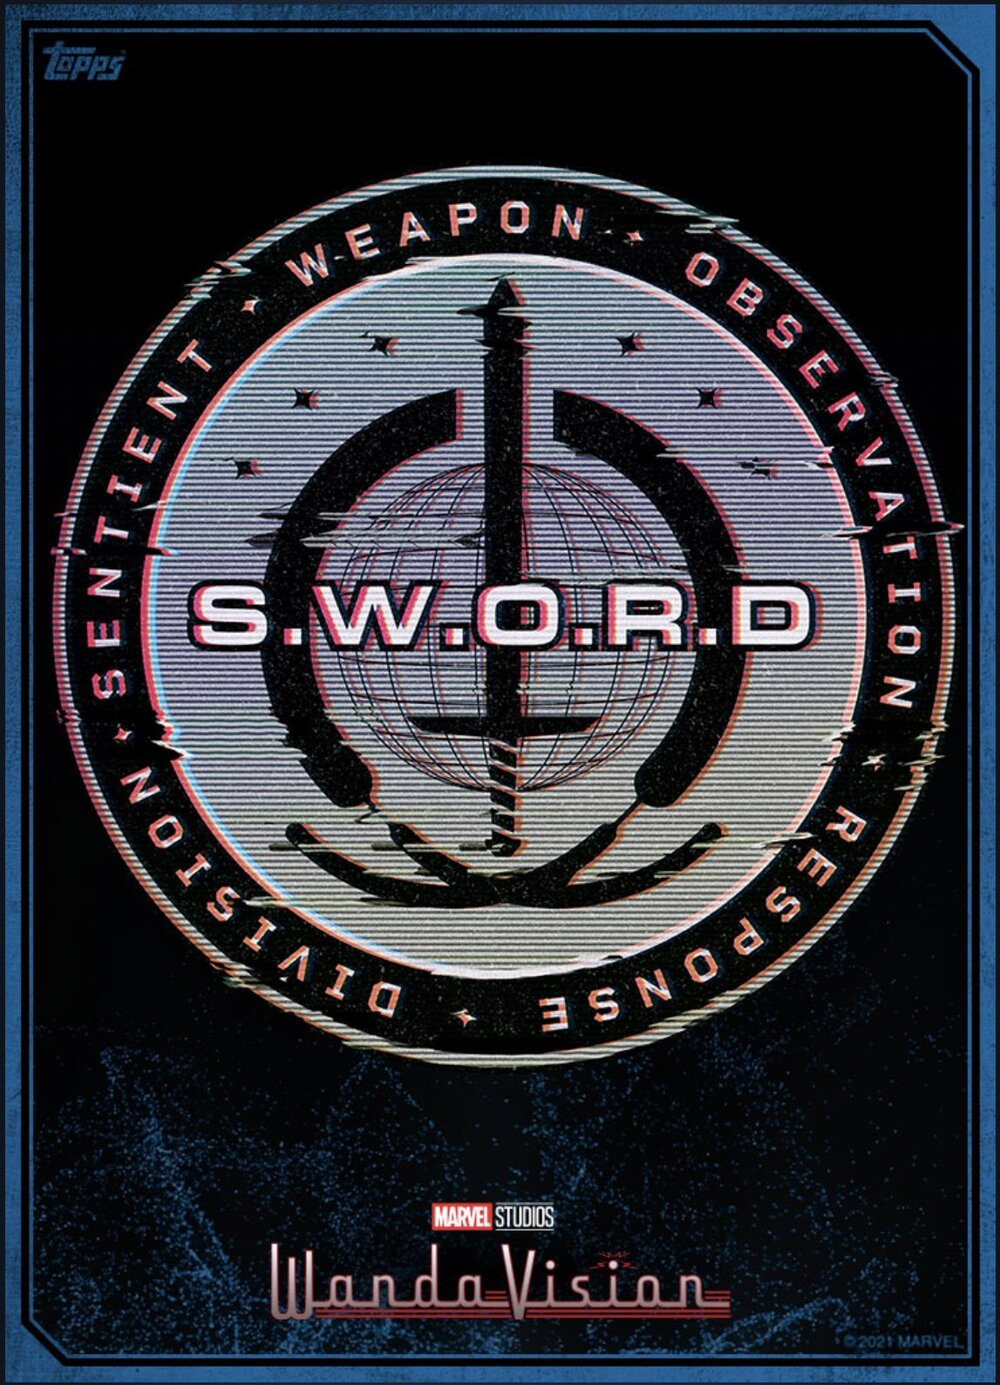 Marvel's S.W.O.R.D. Has a Different Name and Meaning in The MCU — GeekTyrant